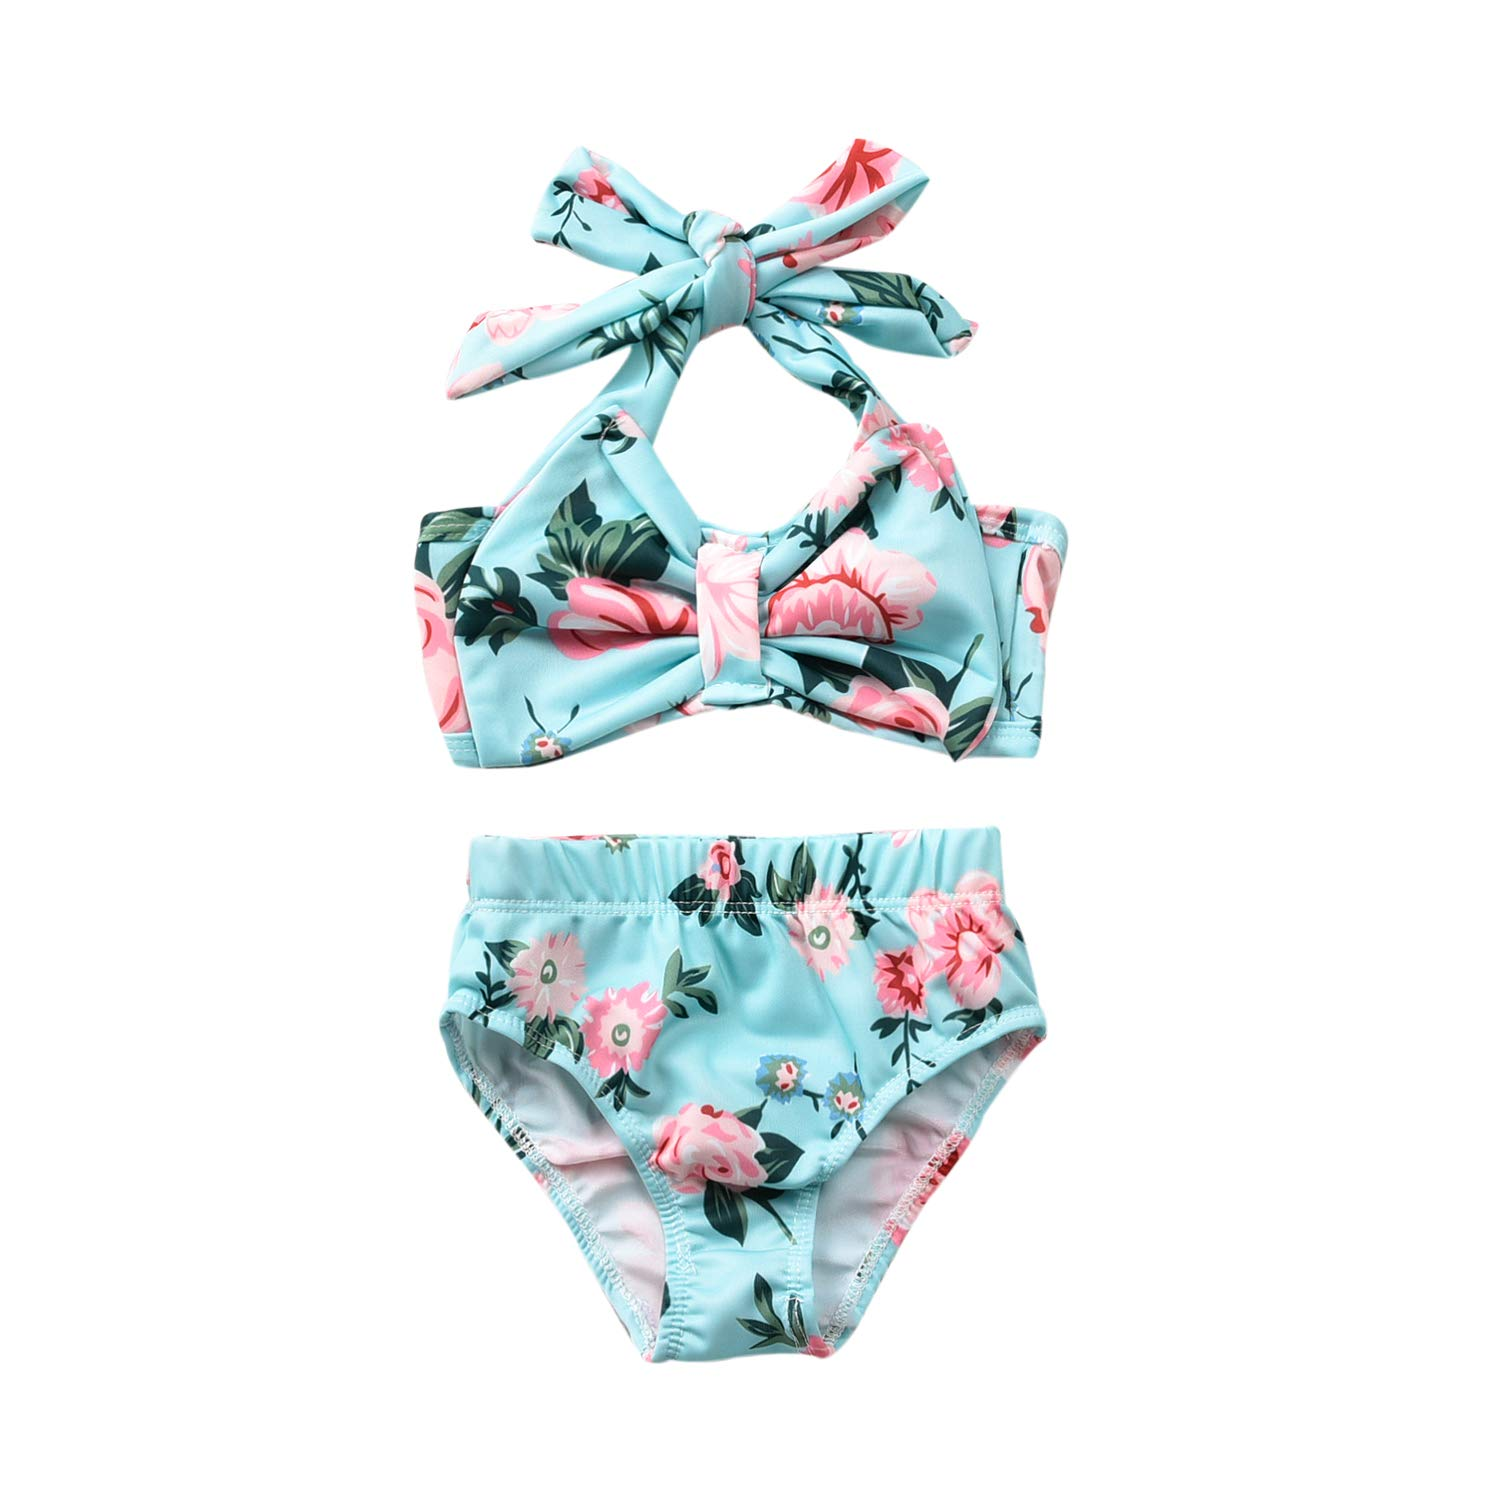 Toddler Girls Two Piece Swimsuit Halter Top Bikini Bottoms Swimming Suit Aalizzwell Baby Girl Bathing Suit